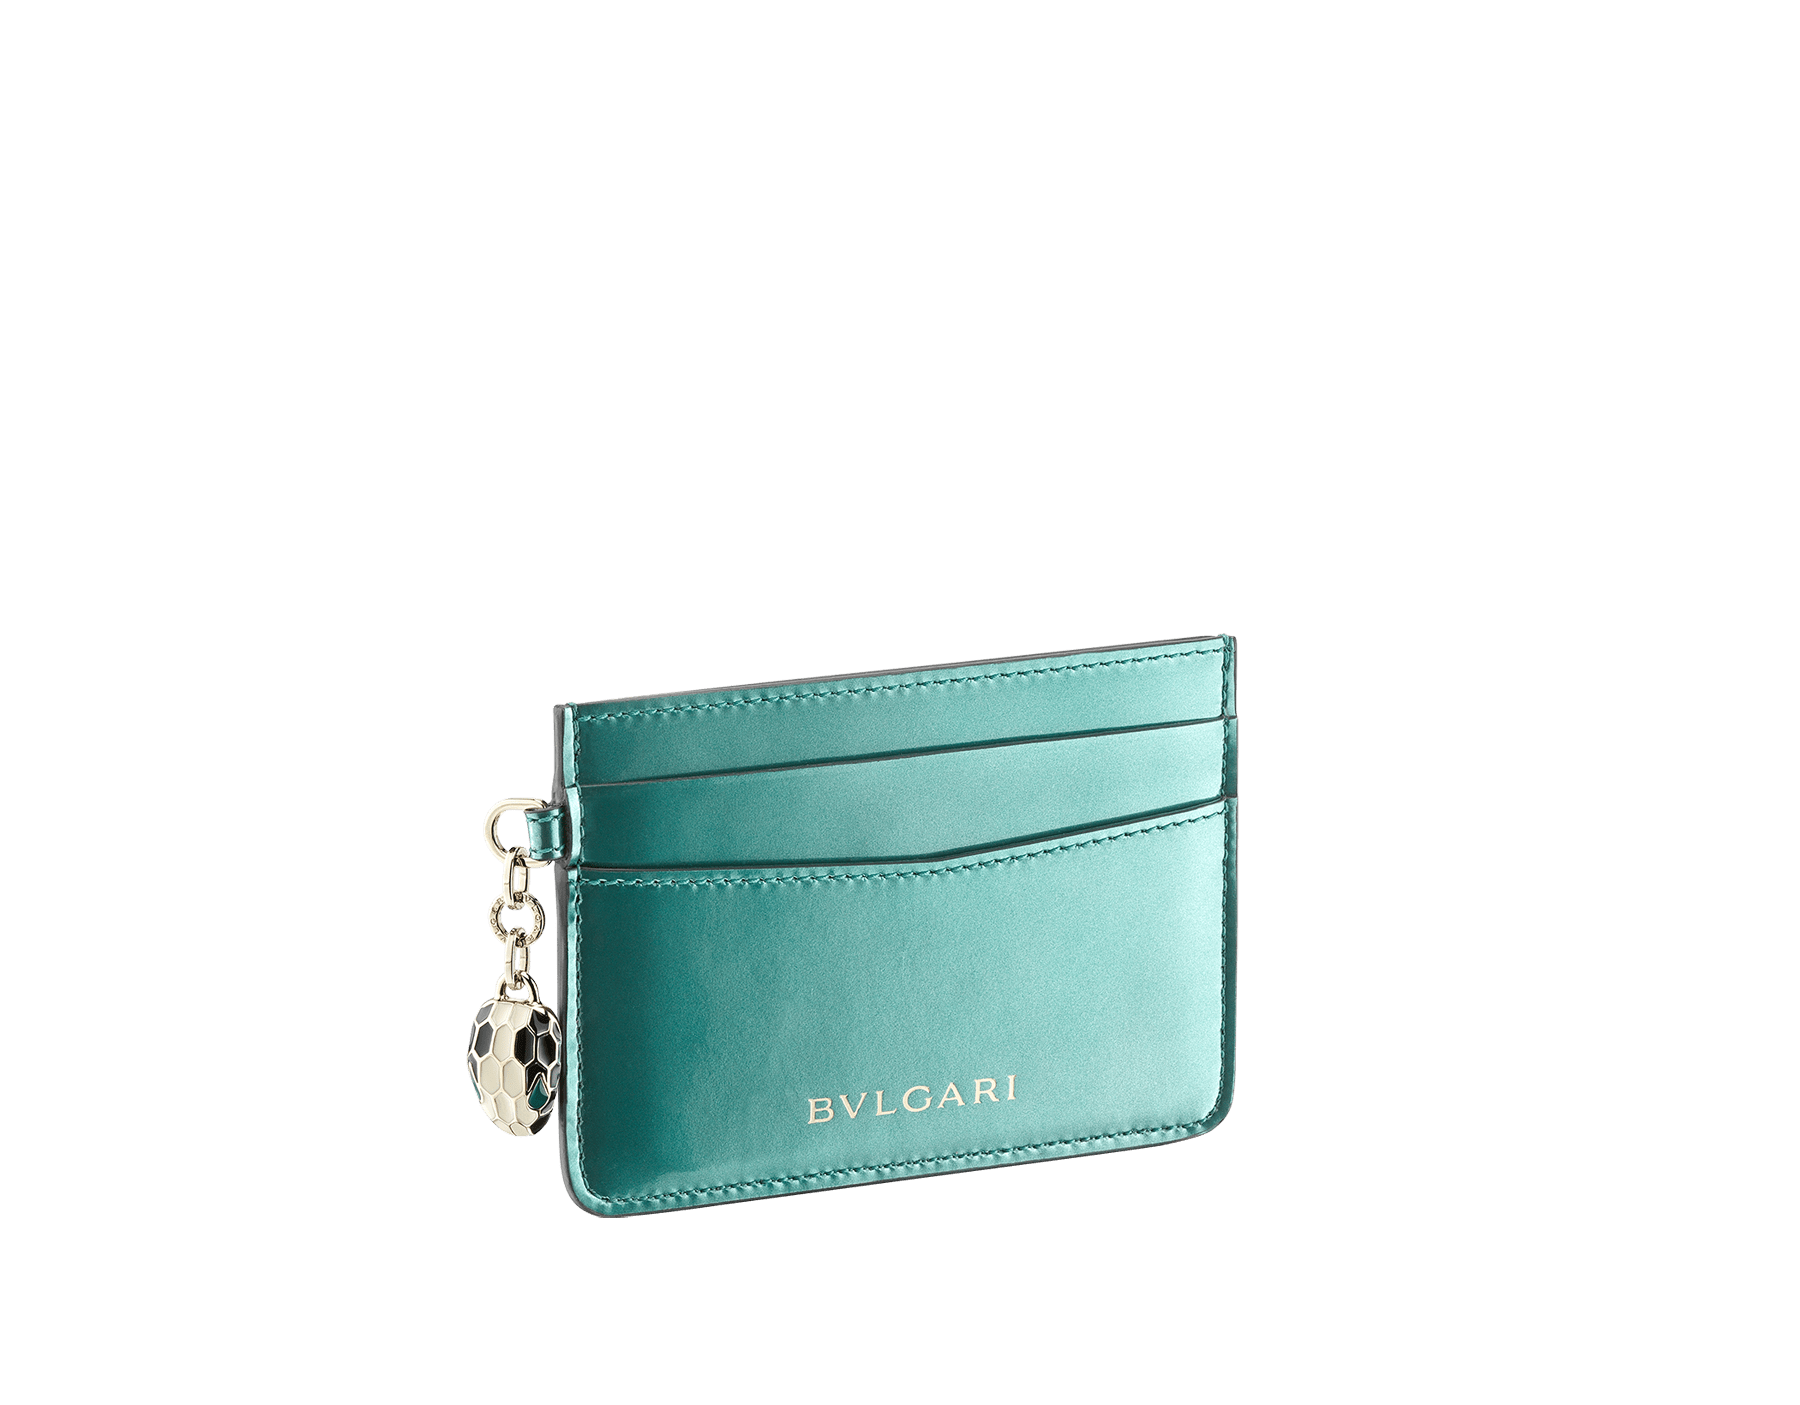 Serpenti Forever folded credit card holder in brushed metallic arctic jade calf leather. Iconic snakehead charm in black and white enamel, with green malachite enamel eyes. 289402 image 1